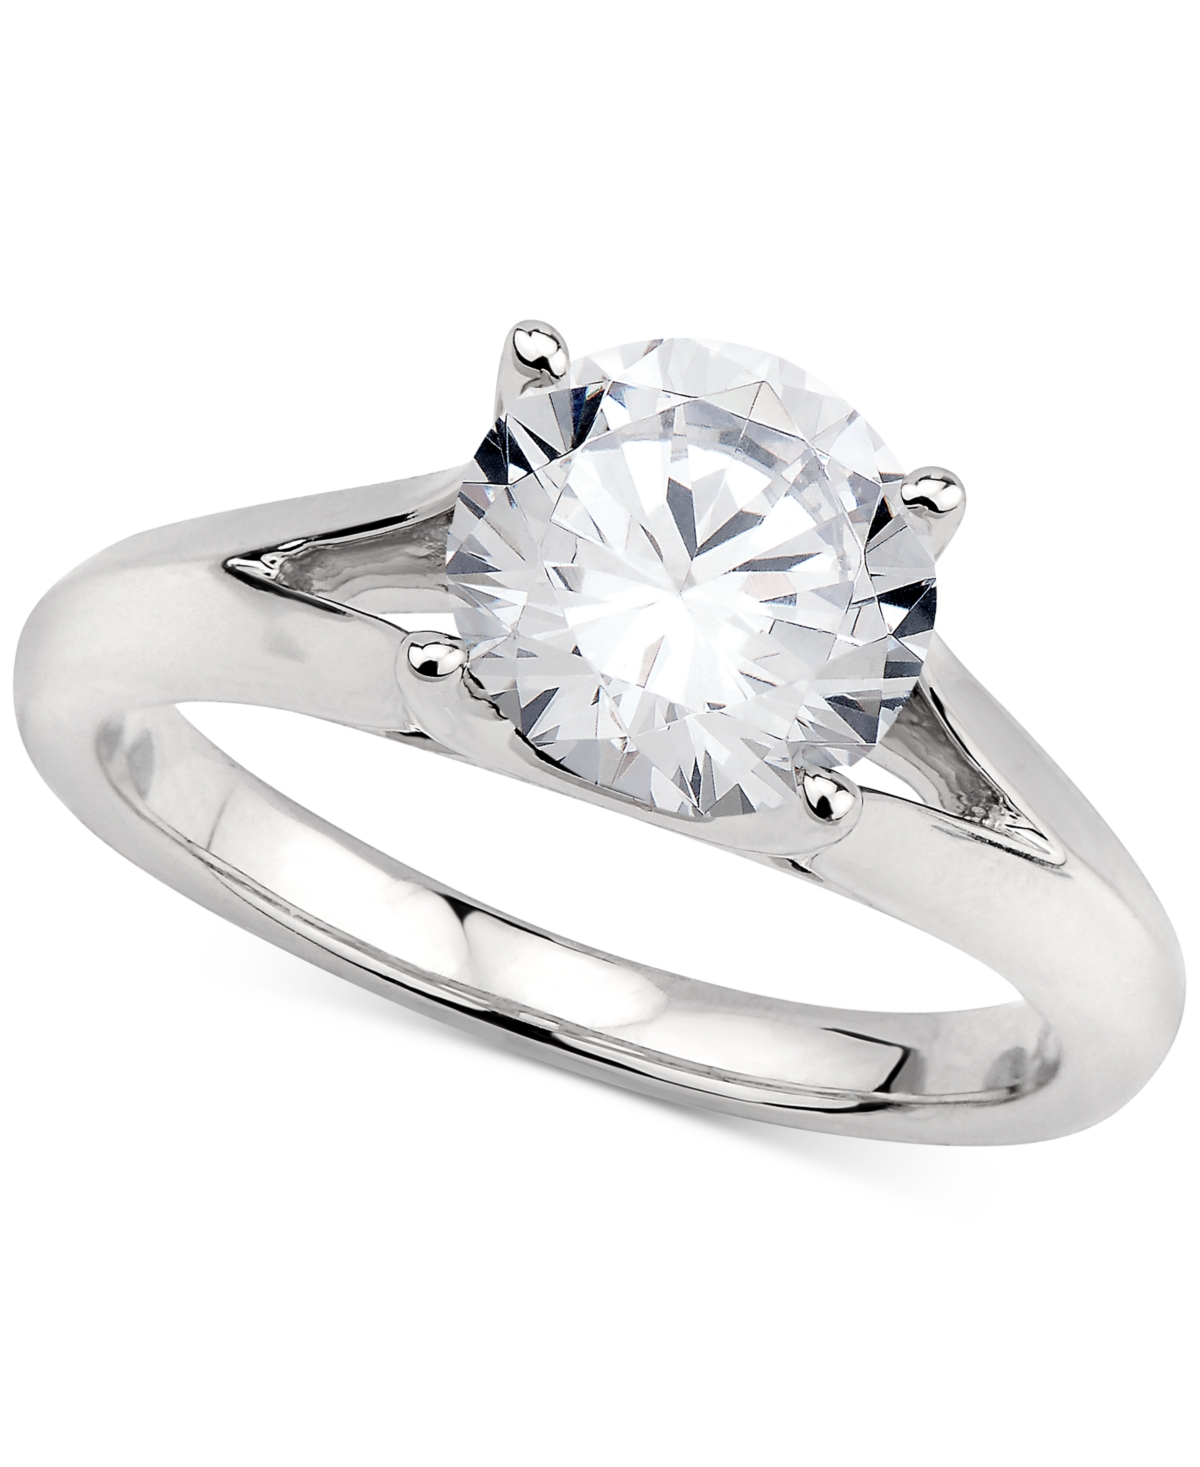 Gia Certified Diamond Solitaire Engagement Ring (2 ct. t.w.) in 14k White Gold